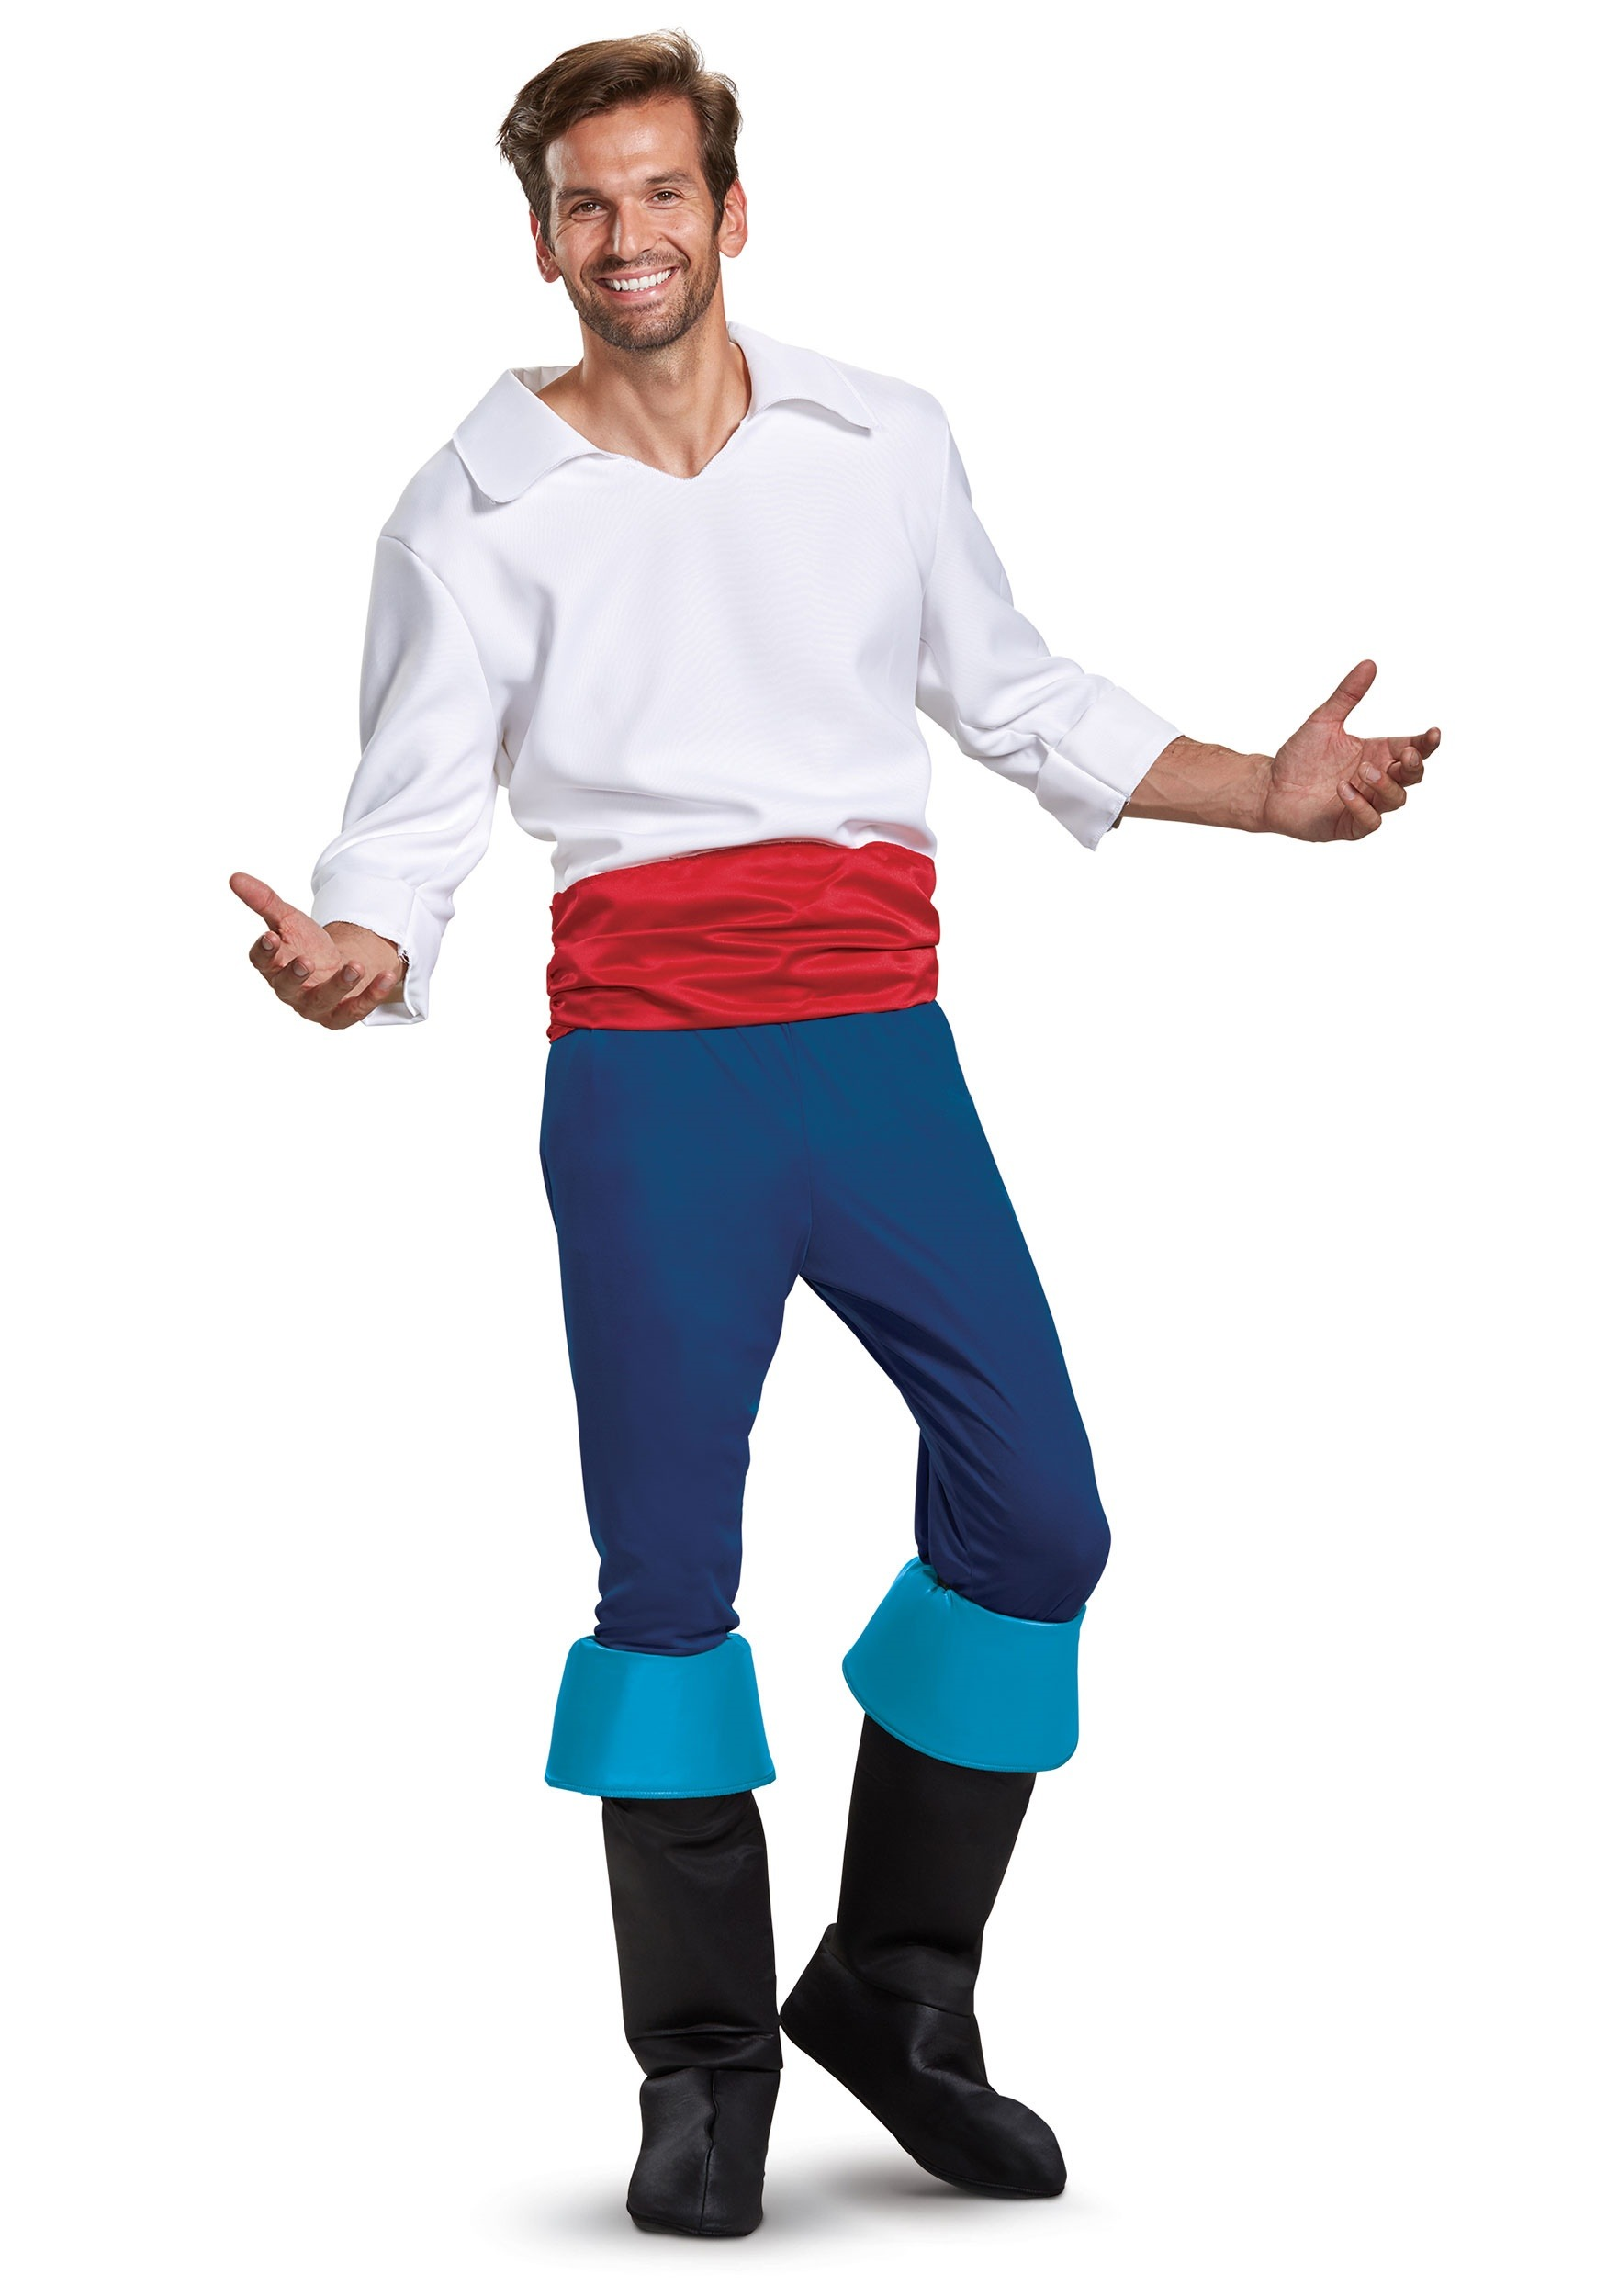 Disney Prince Eric Deluxe Men's Costume